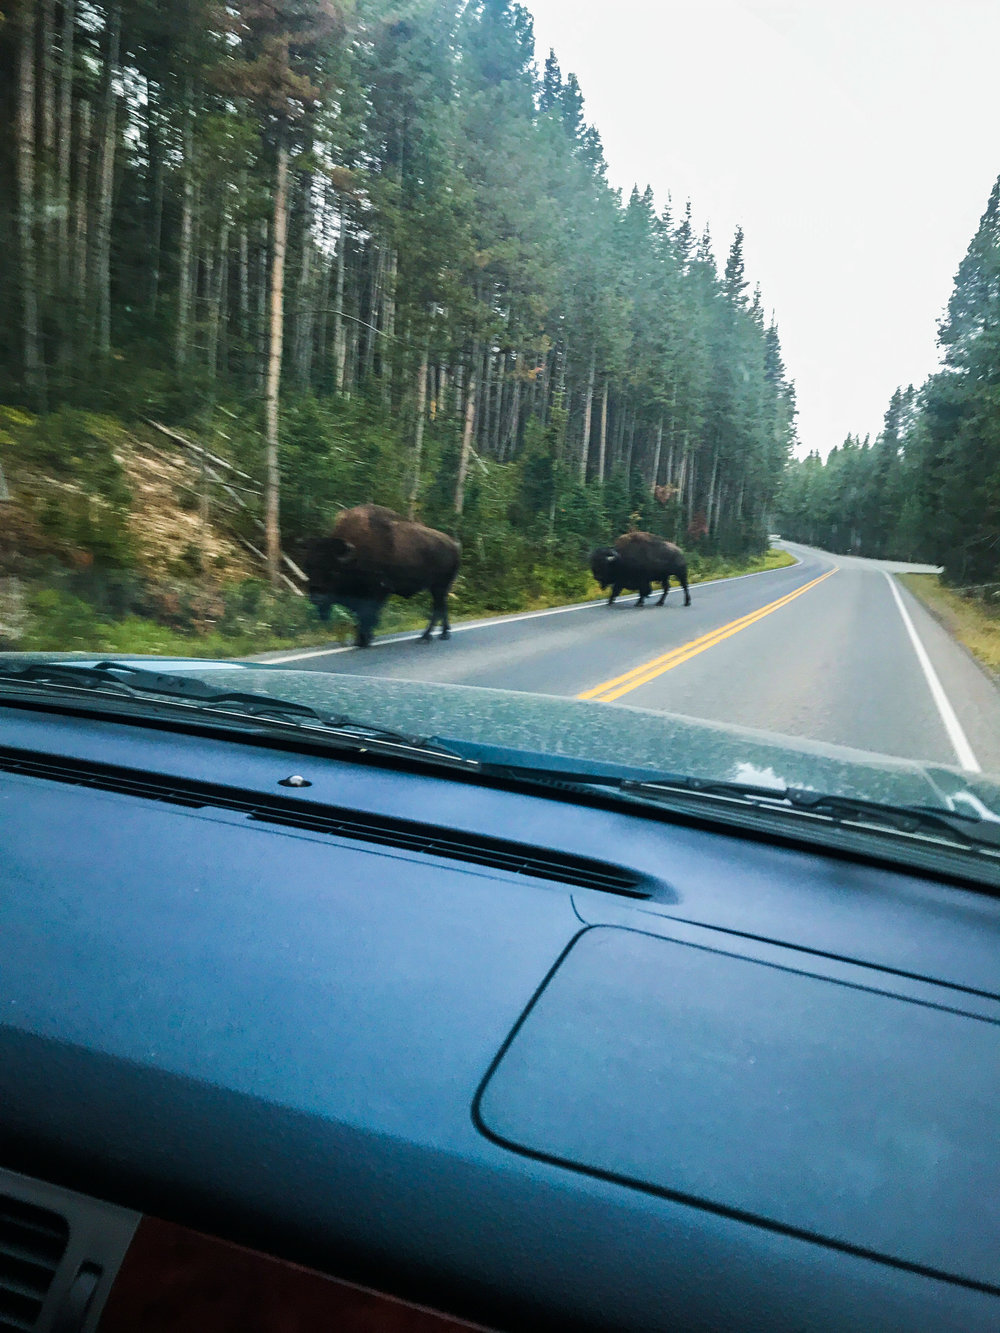 Photo taken while driving, so not the best quality but it gives you an idea of the dangers of driving too fast in Yellowstone!